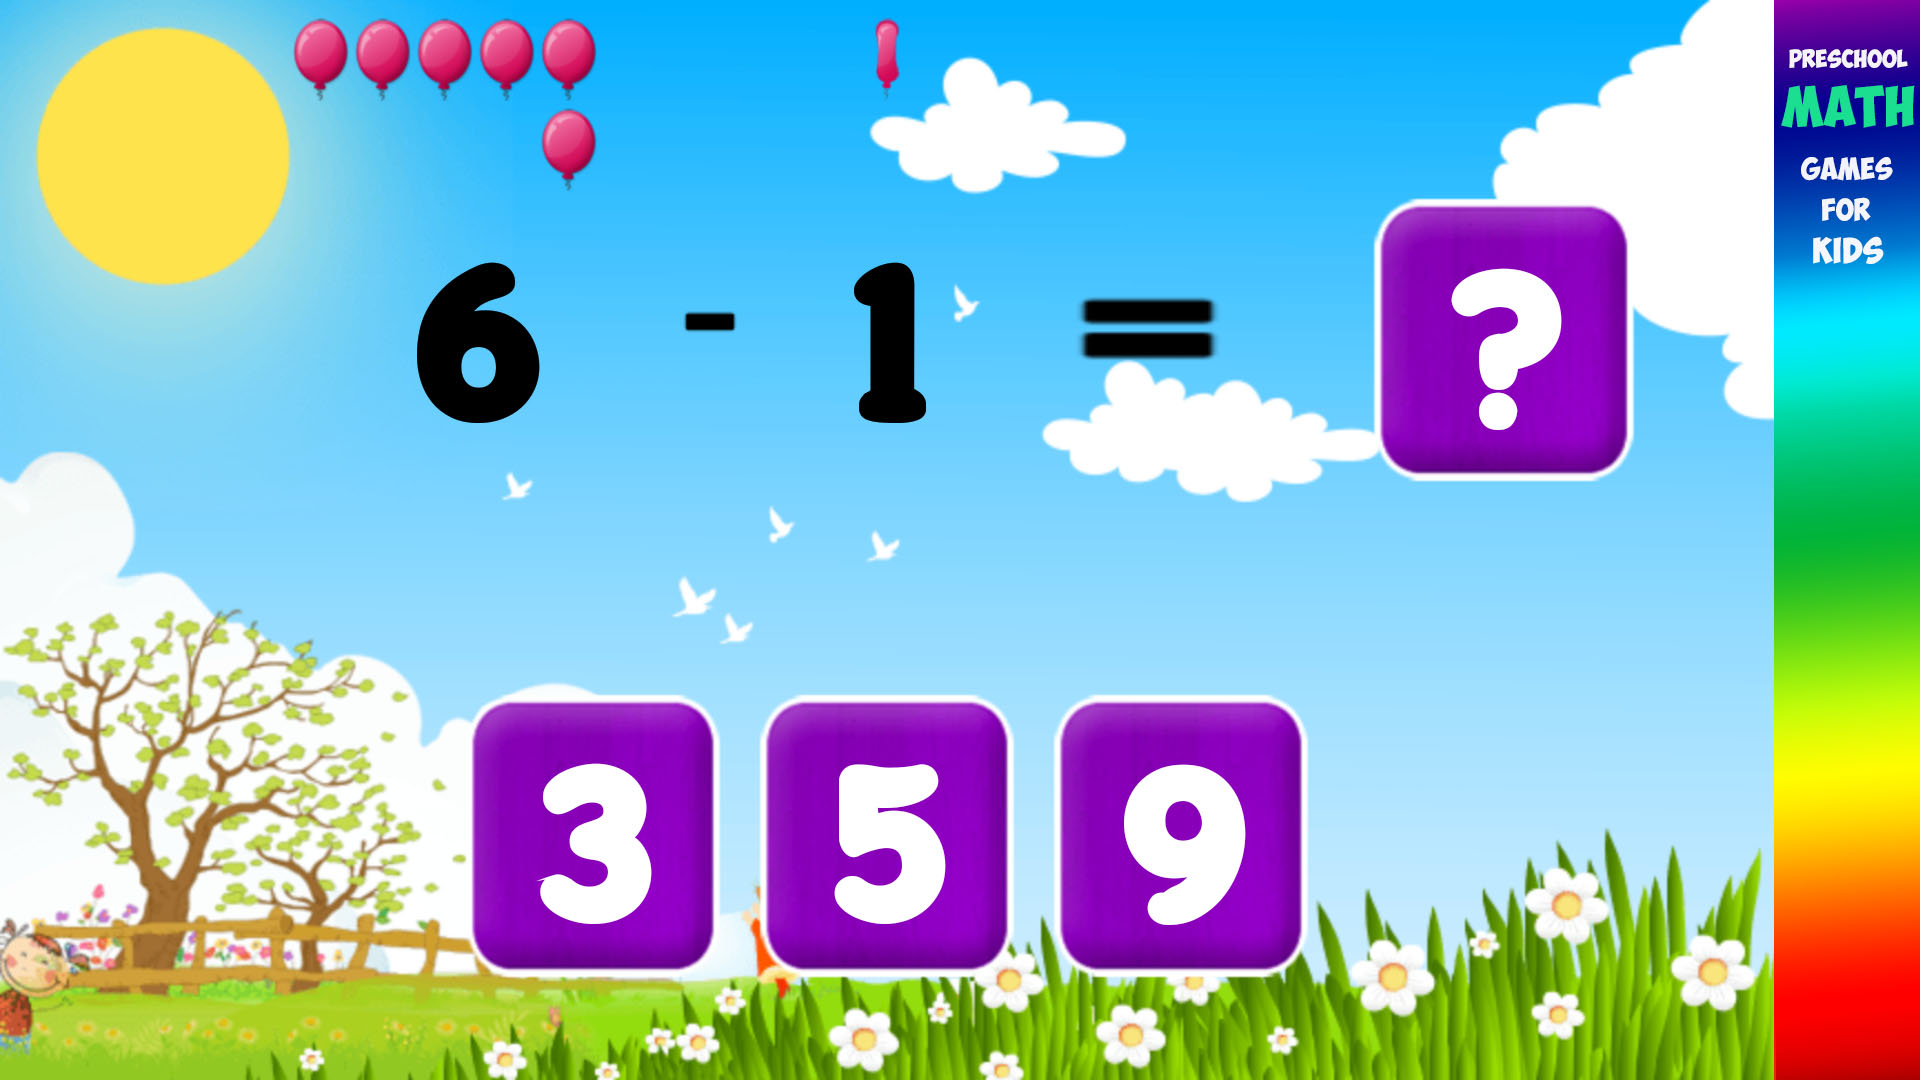 Amazon.com: Preschool Math Games for Kids: Appstore for Android